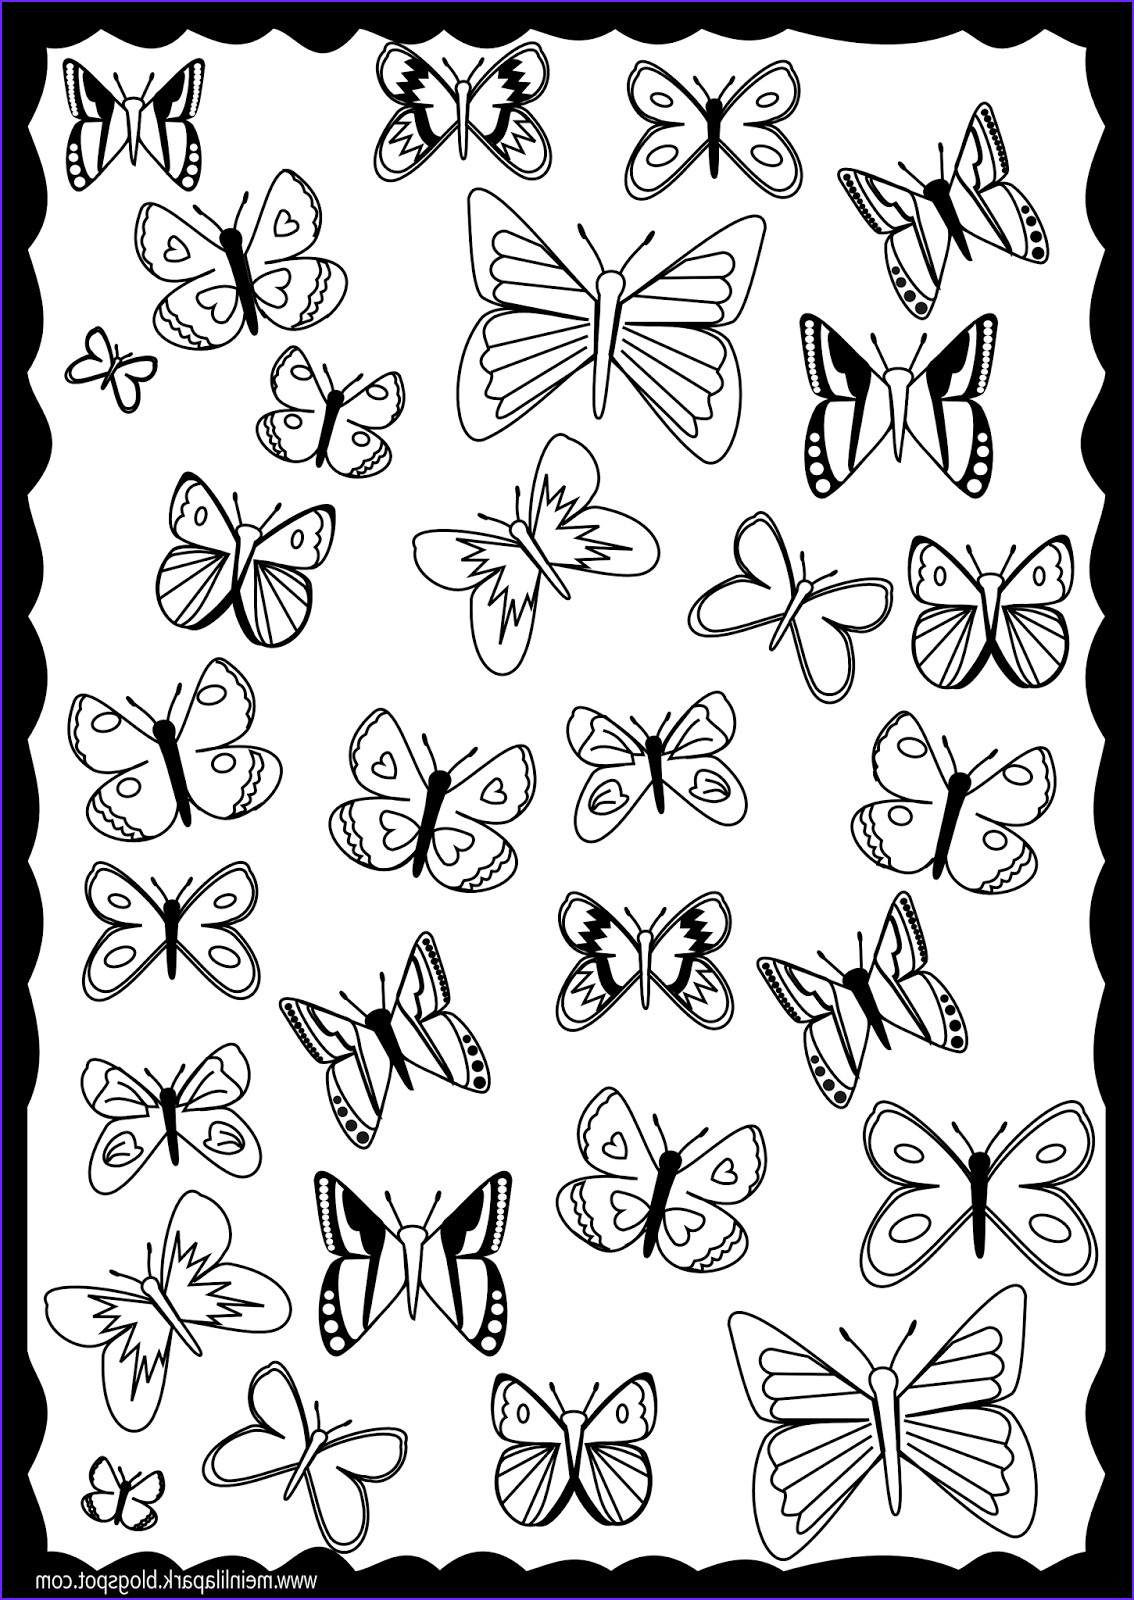 Butterfly Coloring Pages Cool Collection Free Printable butterfly Coloring Page Ausdruckbare